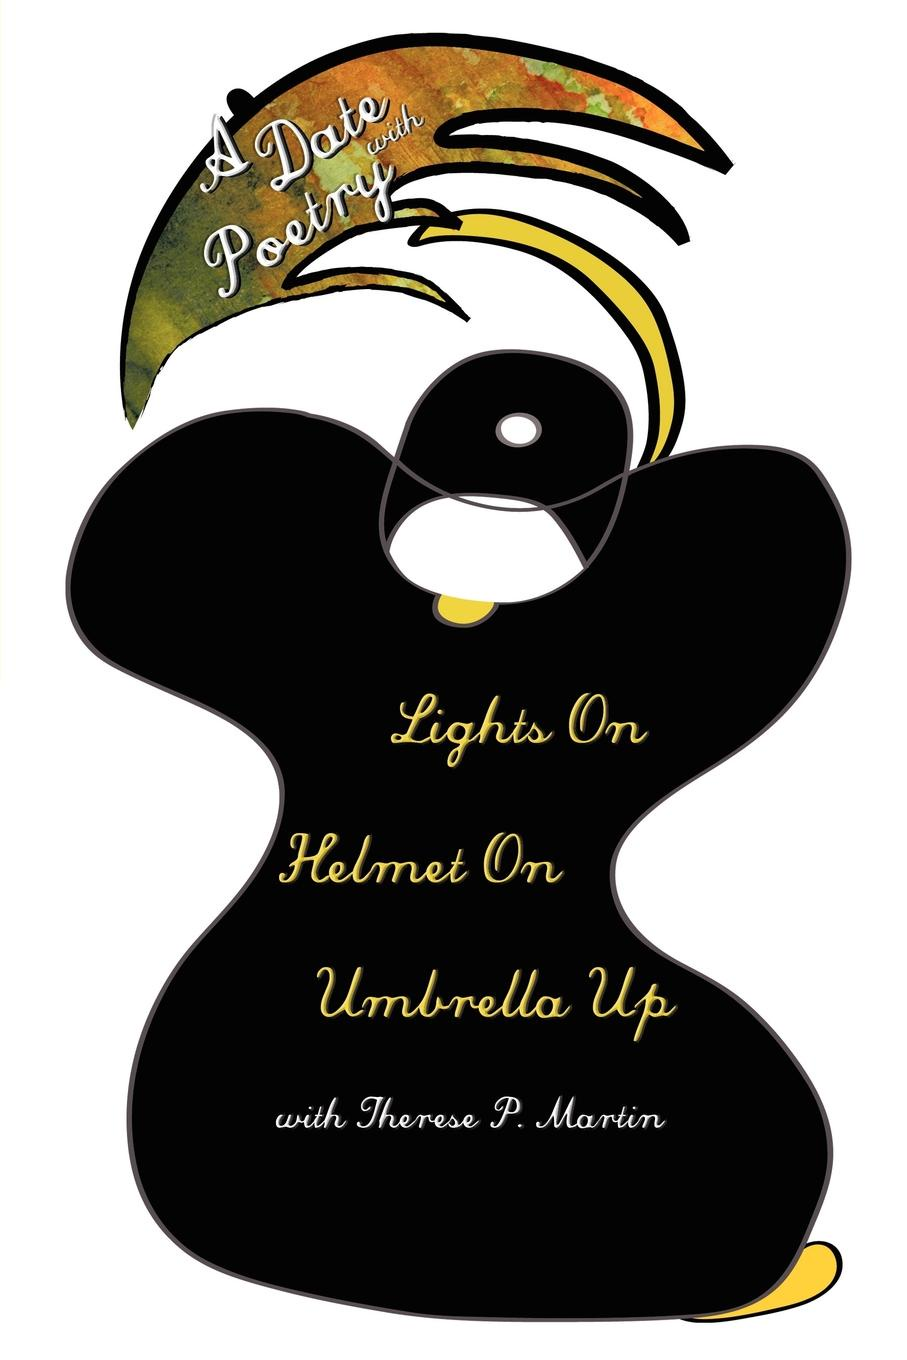 Therese P. Martin A Date with Poetry - Lights On Helmet On Umbrella Up date with mystery